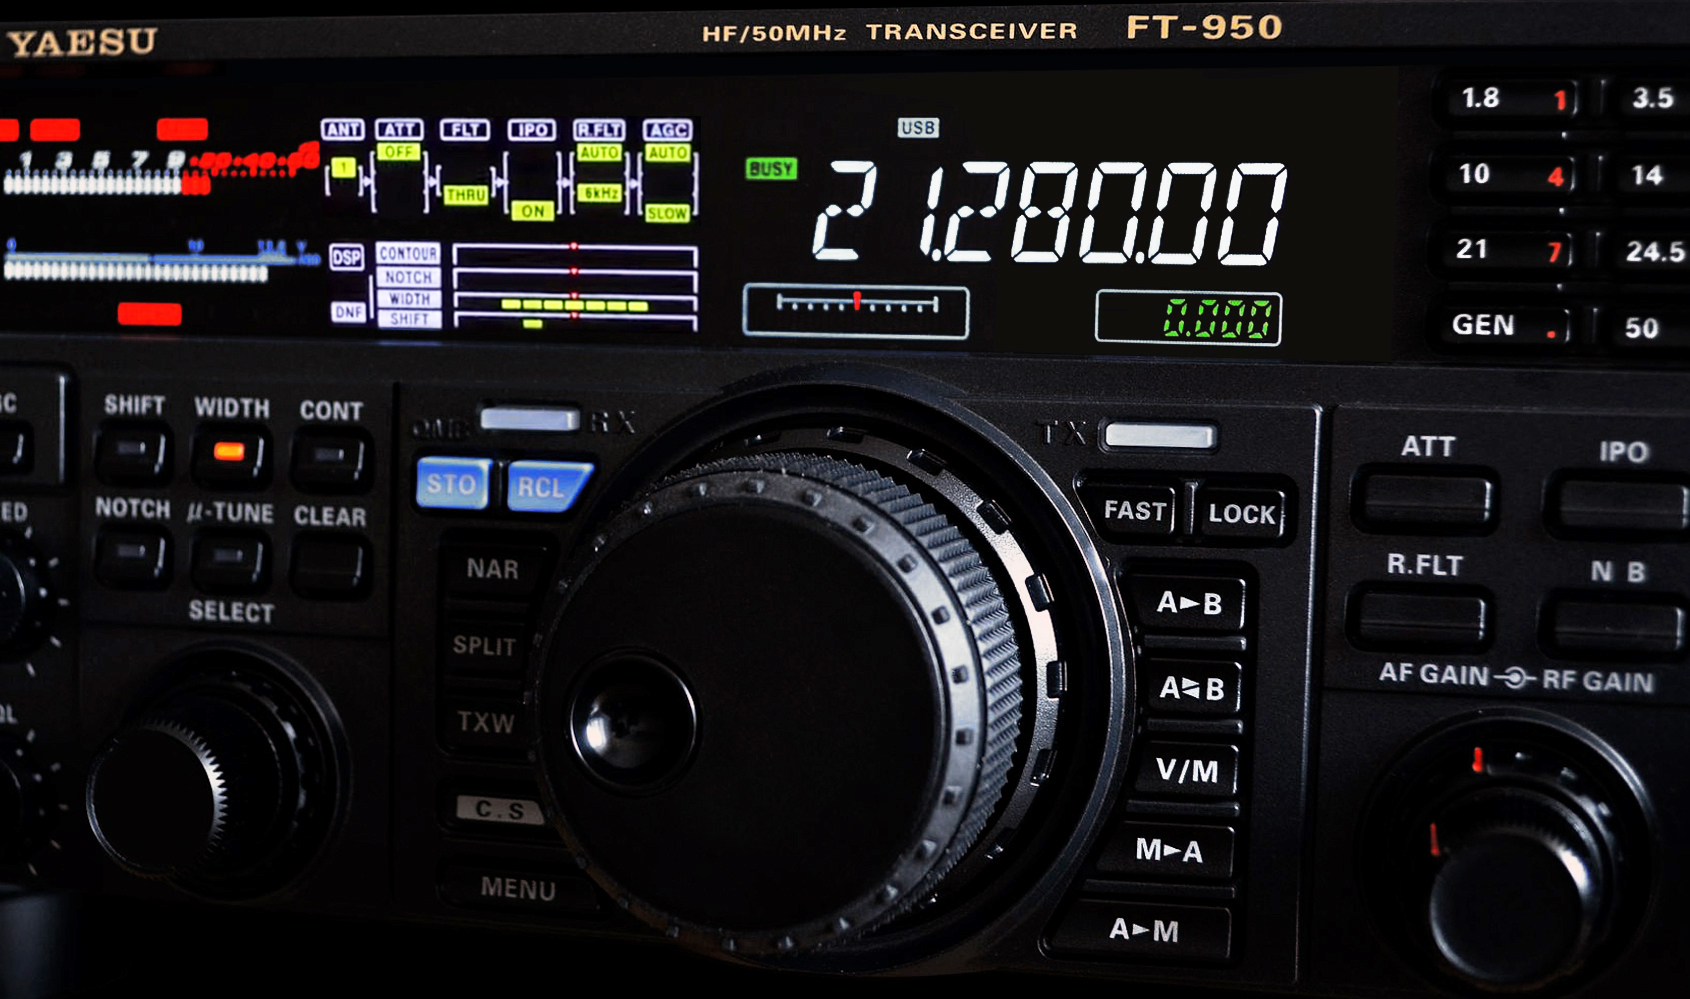 hight resolution of discontinued in 2013 it was replaced advantageously by yaesu ft dx1200 1200 1500 in 2015 document t lombry